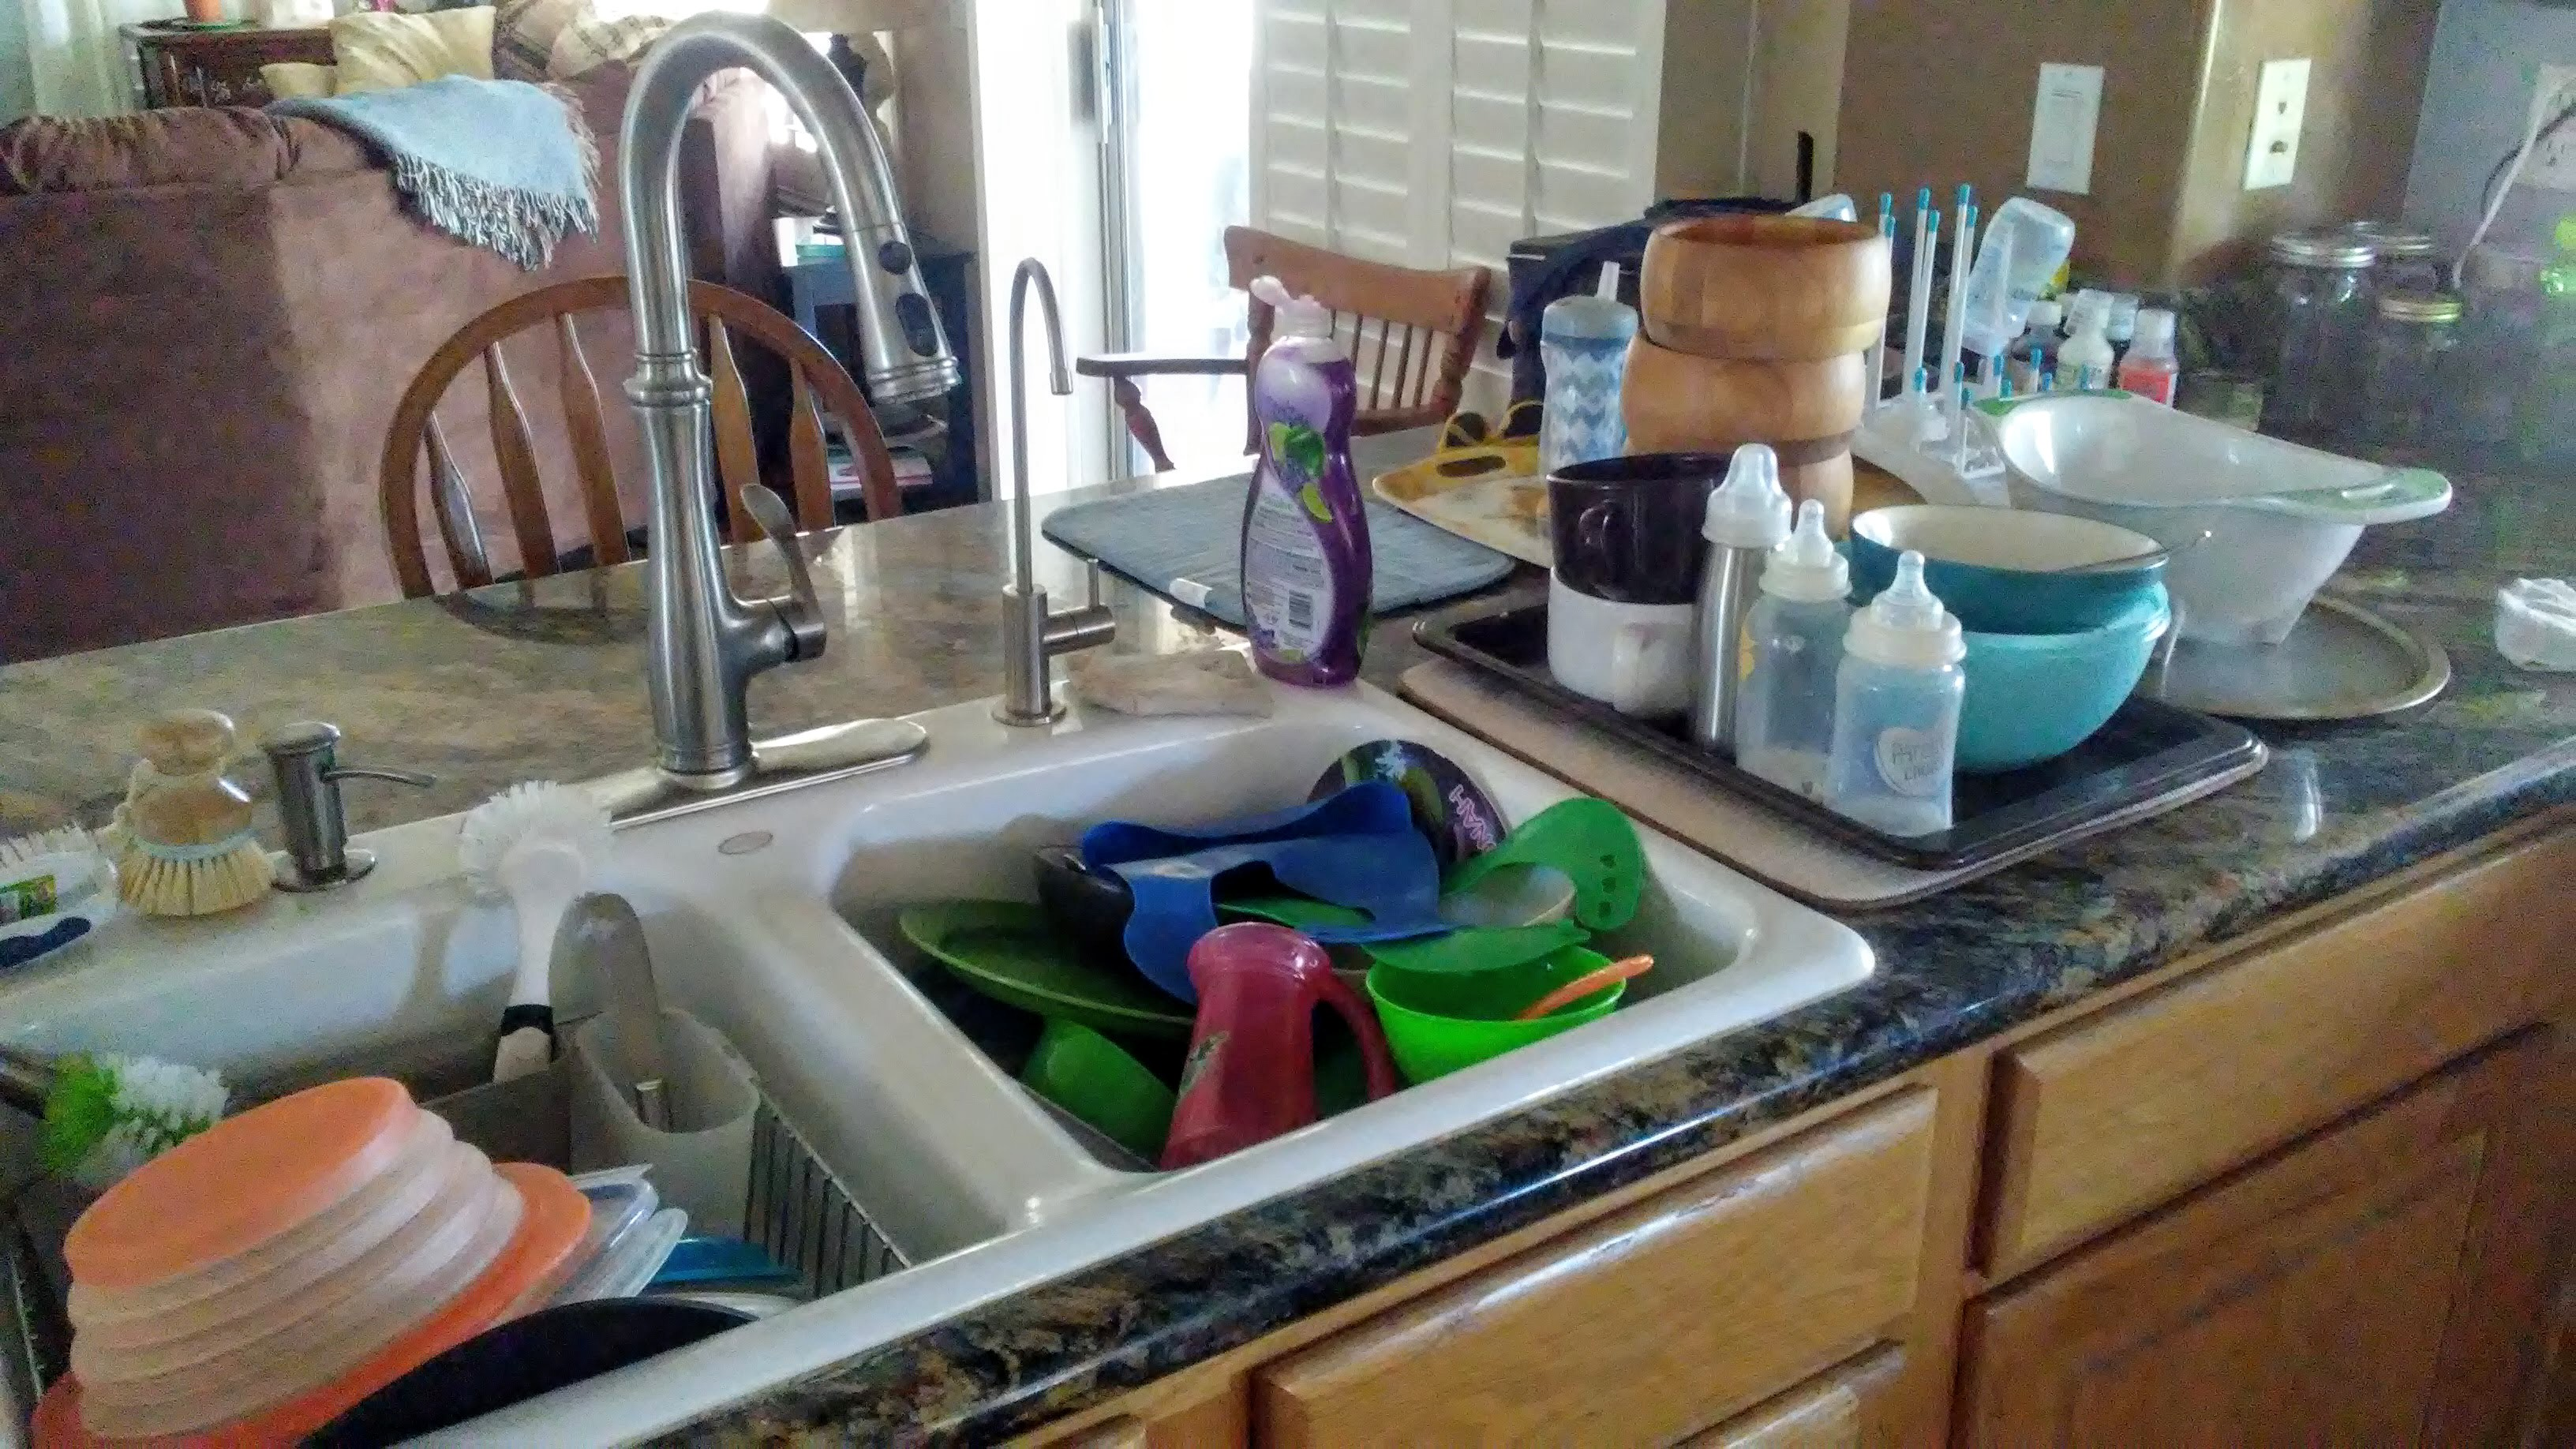 How to catch up on dirty dishes